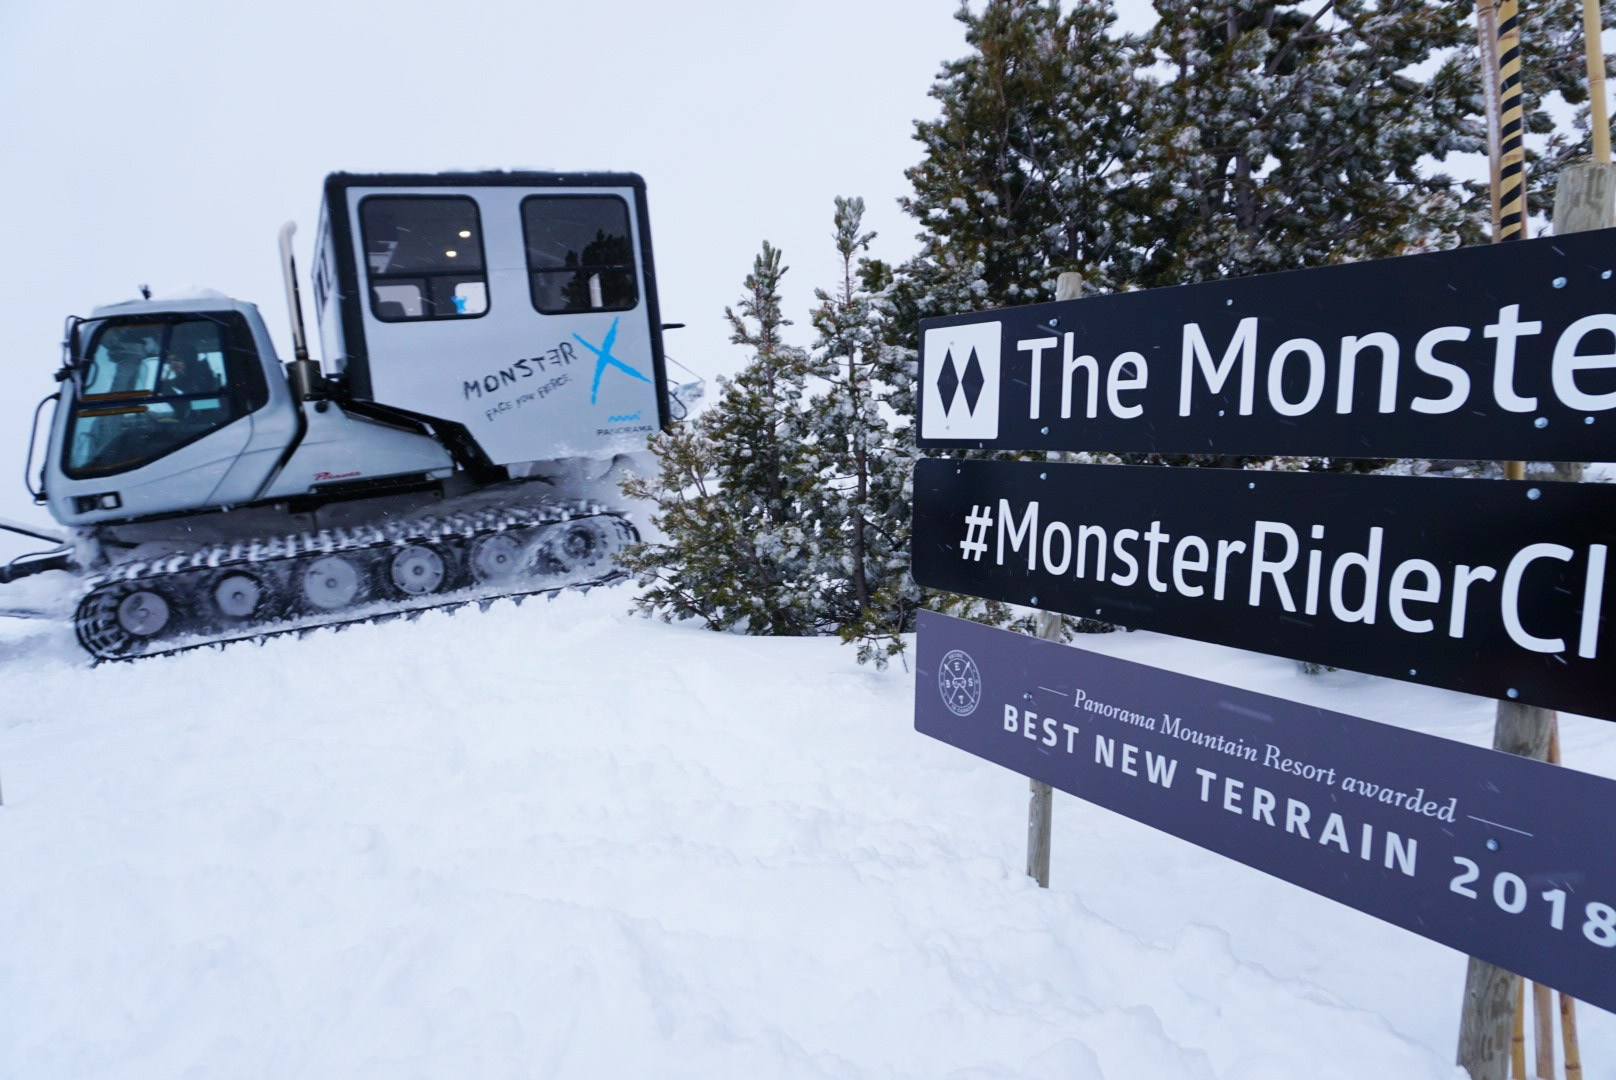 Panorama Mountain Catskiing Powder Highway Monster Terrain